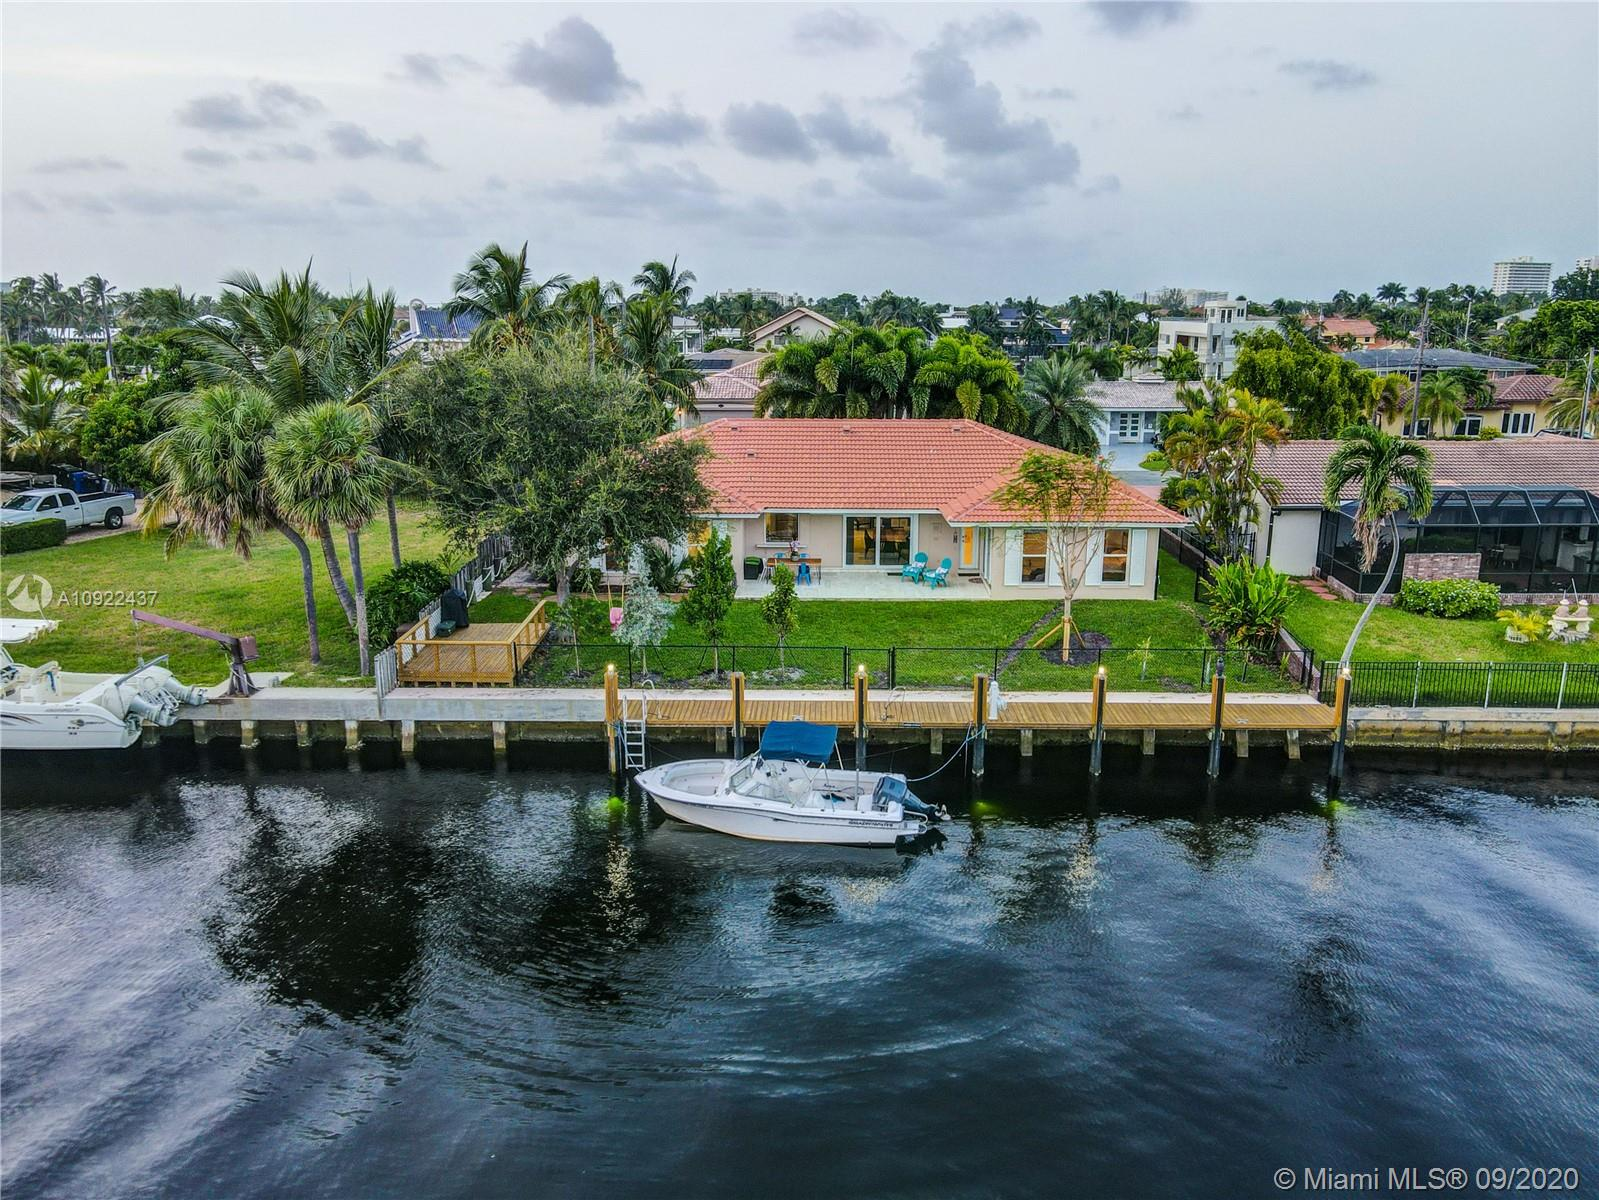 Beautifully remodeled Bermuda Riviera home on Galt Ocean Mile. This house has been completely remodeled w/high end finishes. Foyer entry leads to open floor plan w/sweeping water views from almost every room. The 4 BDRM's are split w master suite & walk-in closet. 80ft of water w/ocean access from wide canal feeding to  Intracoastal. New 60 foot dock w/underwater lighting, new seawall cap & new higher code height. The cabana bath has a double vanity. New roof, new A/C, & all impact windows & doors. Crown molding, plantation shutters & baseboard, brand new appliances. Gourmet kitchen crafted from a renowned designer w/all quartz kitchen counter tops with 9 ft waterfall island,& dual zone wine cooler. Gated community, walking distance to shops & restaurants. Top rated Bayview school district